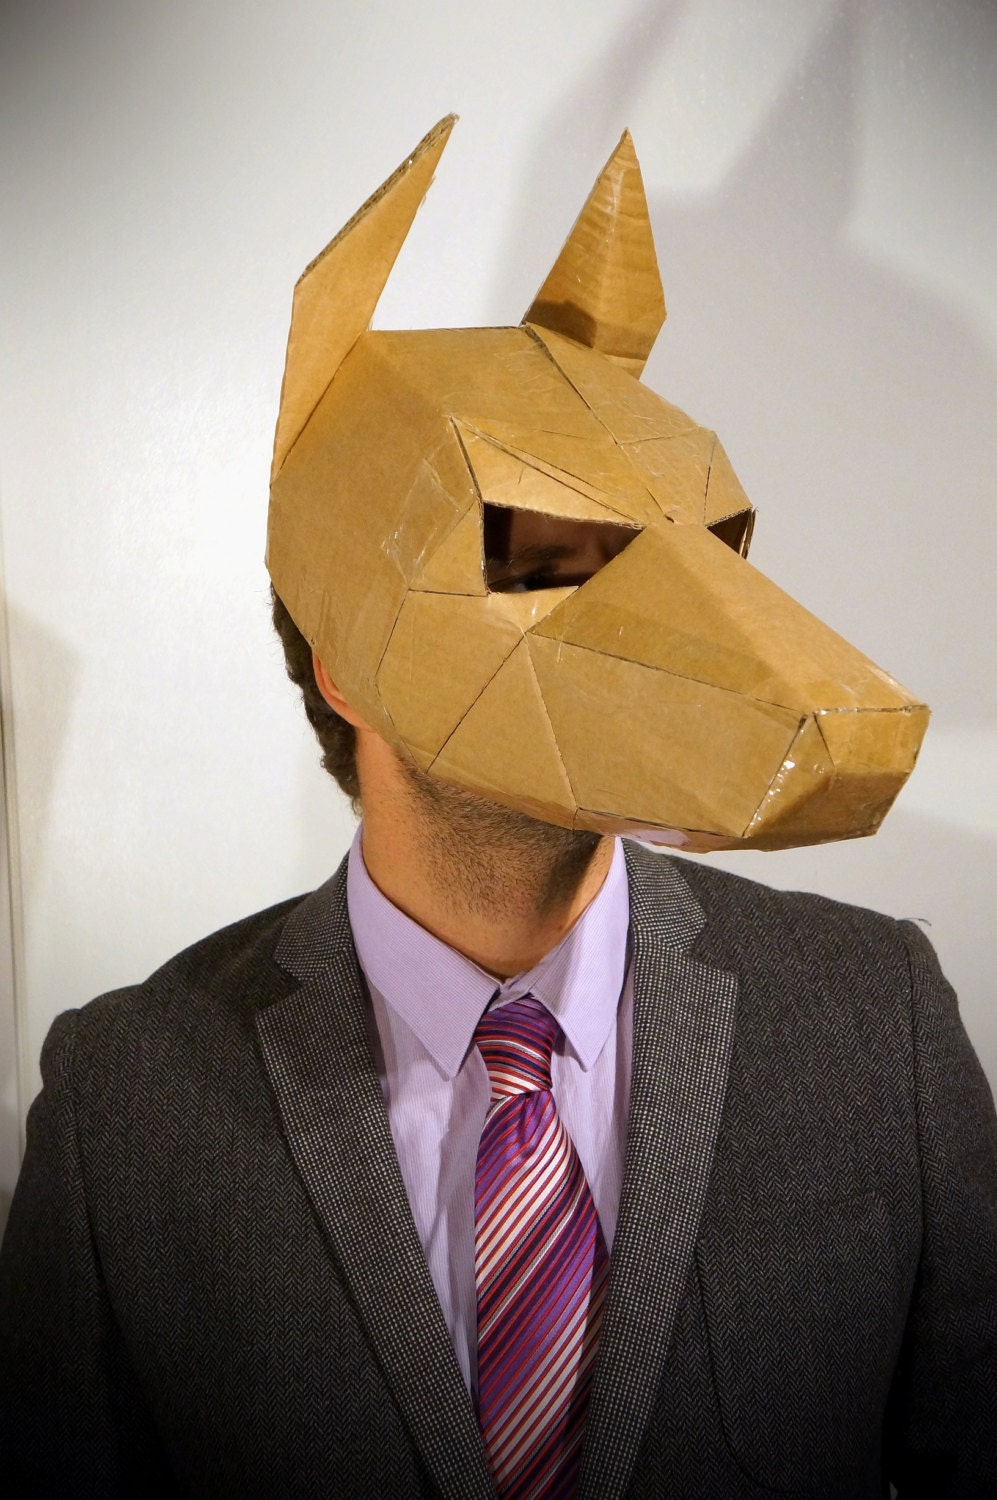 How To Make A Dog Mask Out Of Paper: Dog Mask Make Your Own Animal Mask From Recycled By